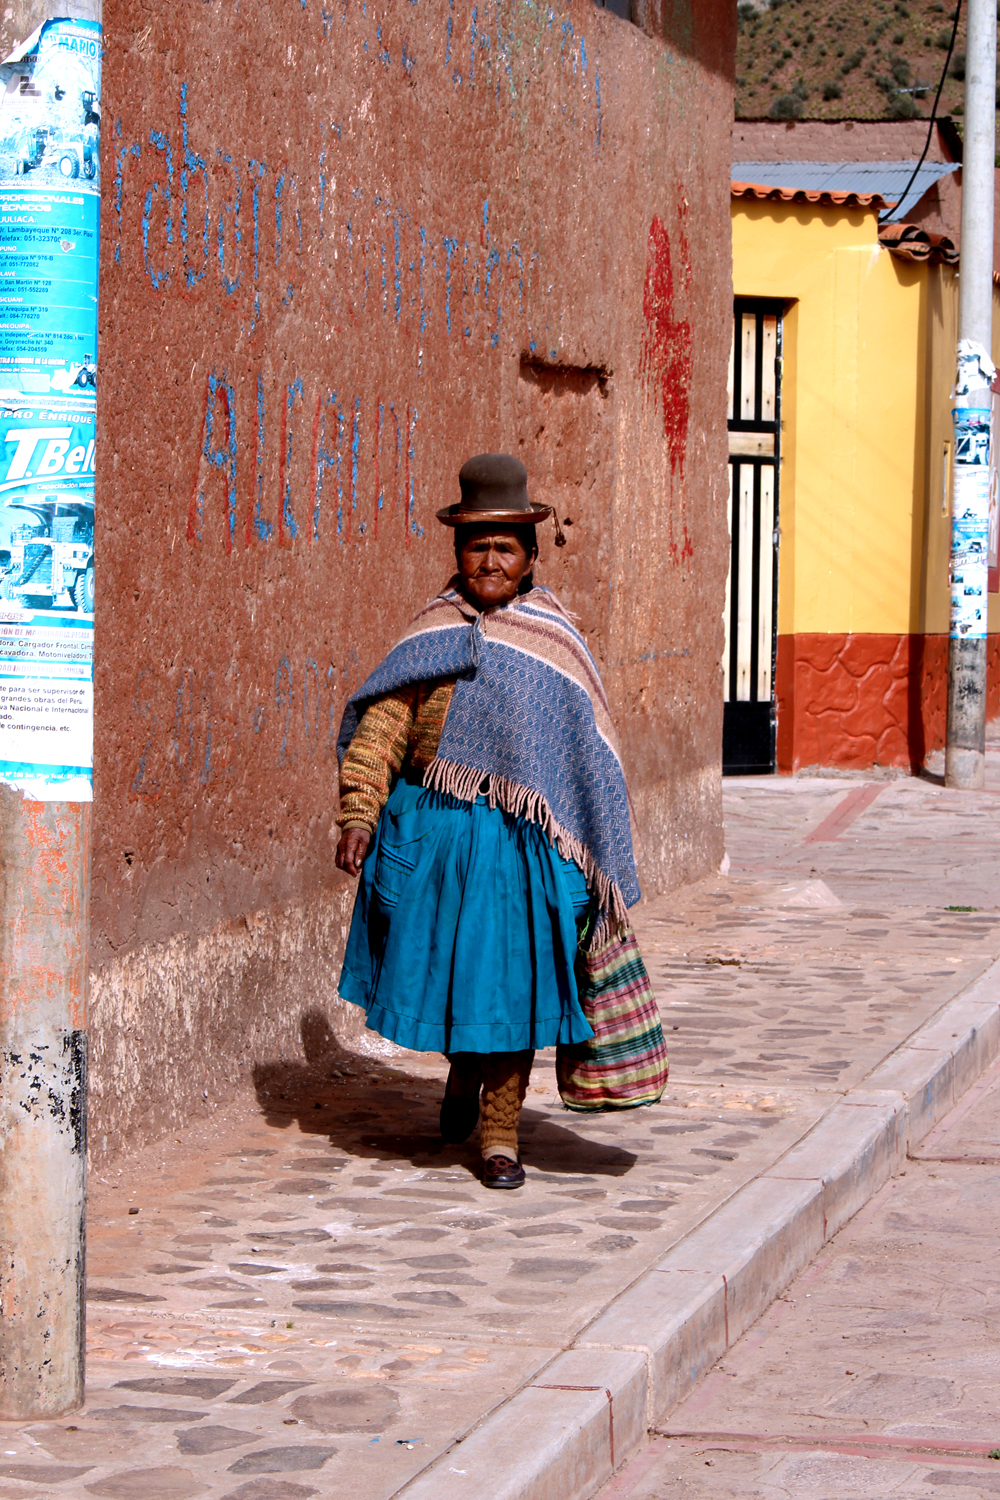 Pucara, Peru - travel & culture blog